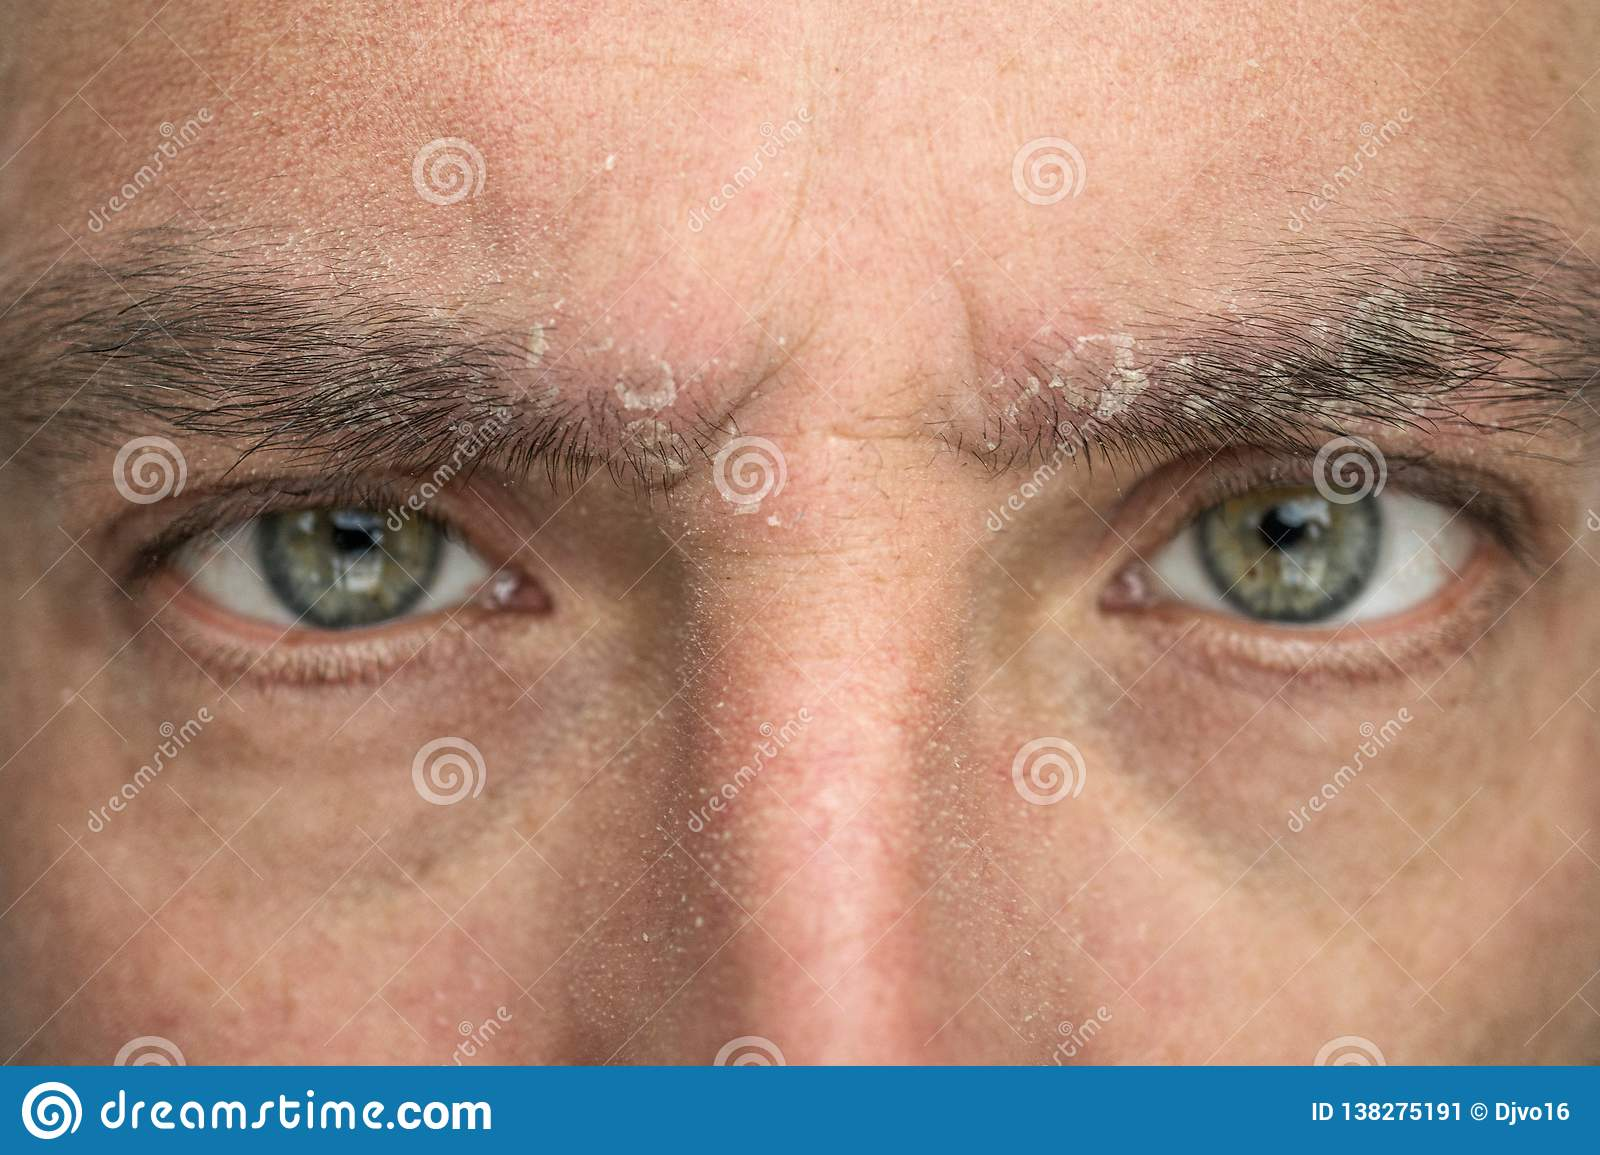 Psoriasis On The Eyebrow Close Up Dermatological Diseases Skin